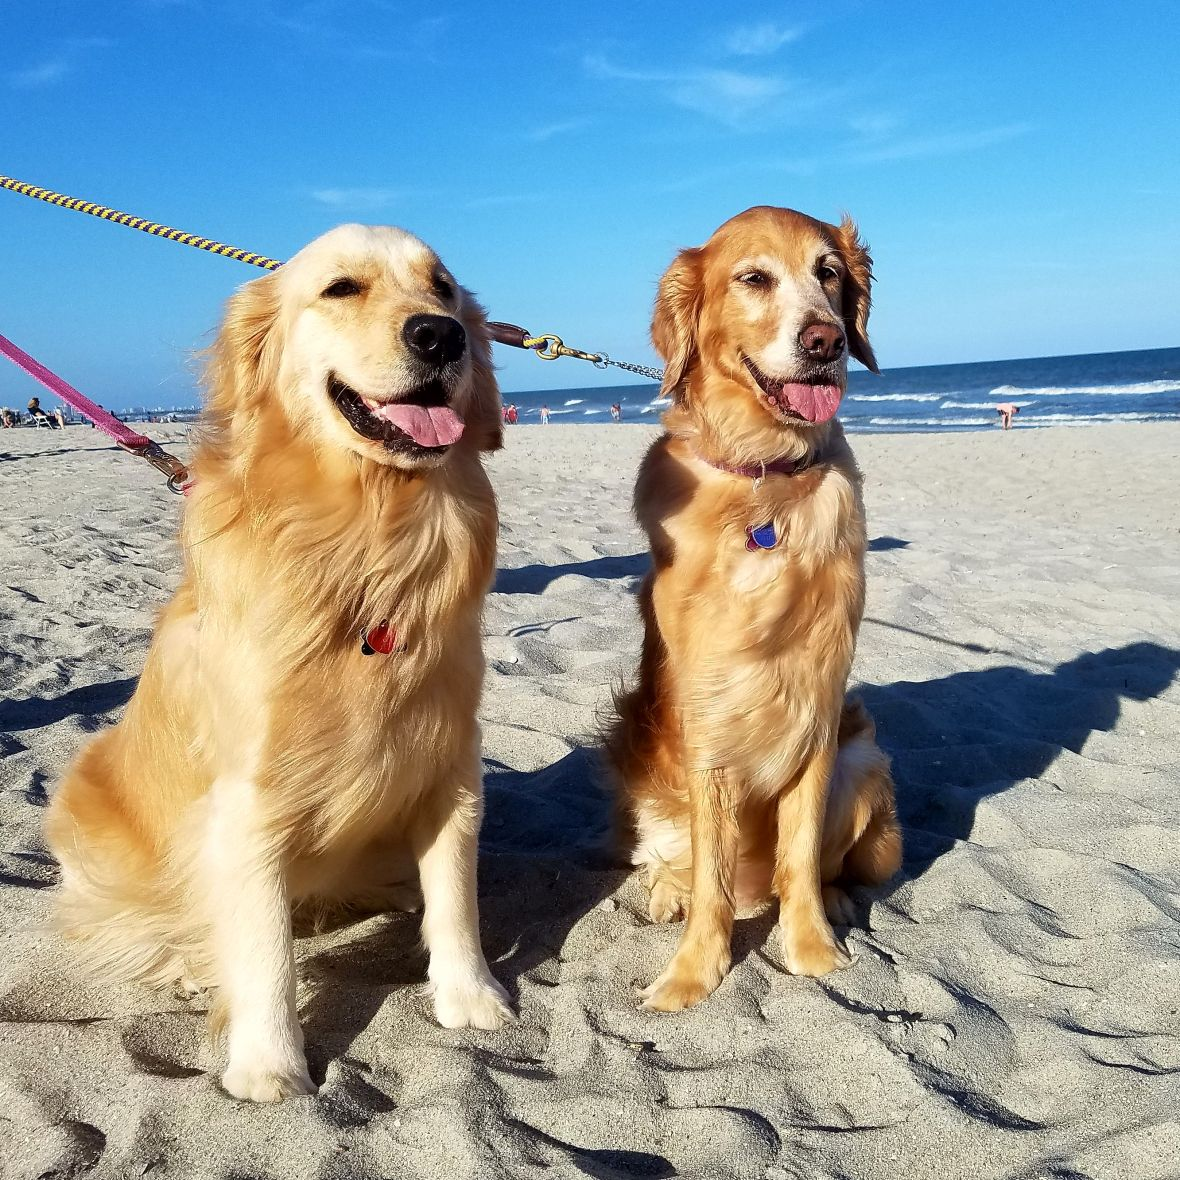 Two Blondes And A Beach Dog Friends Beautiful Dogs Beach